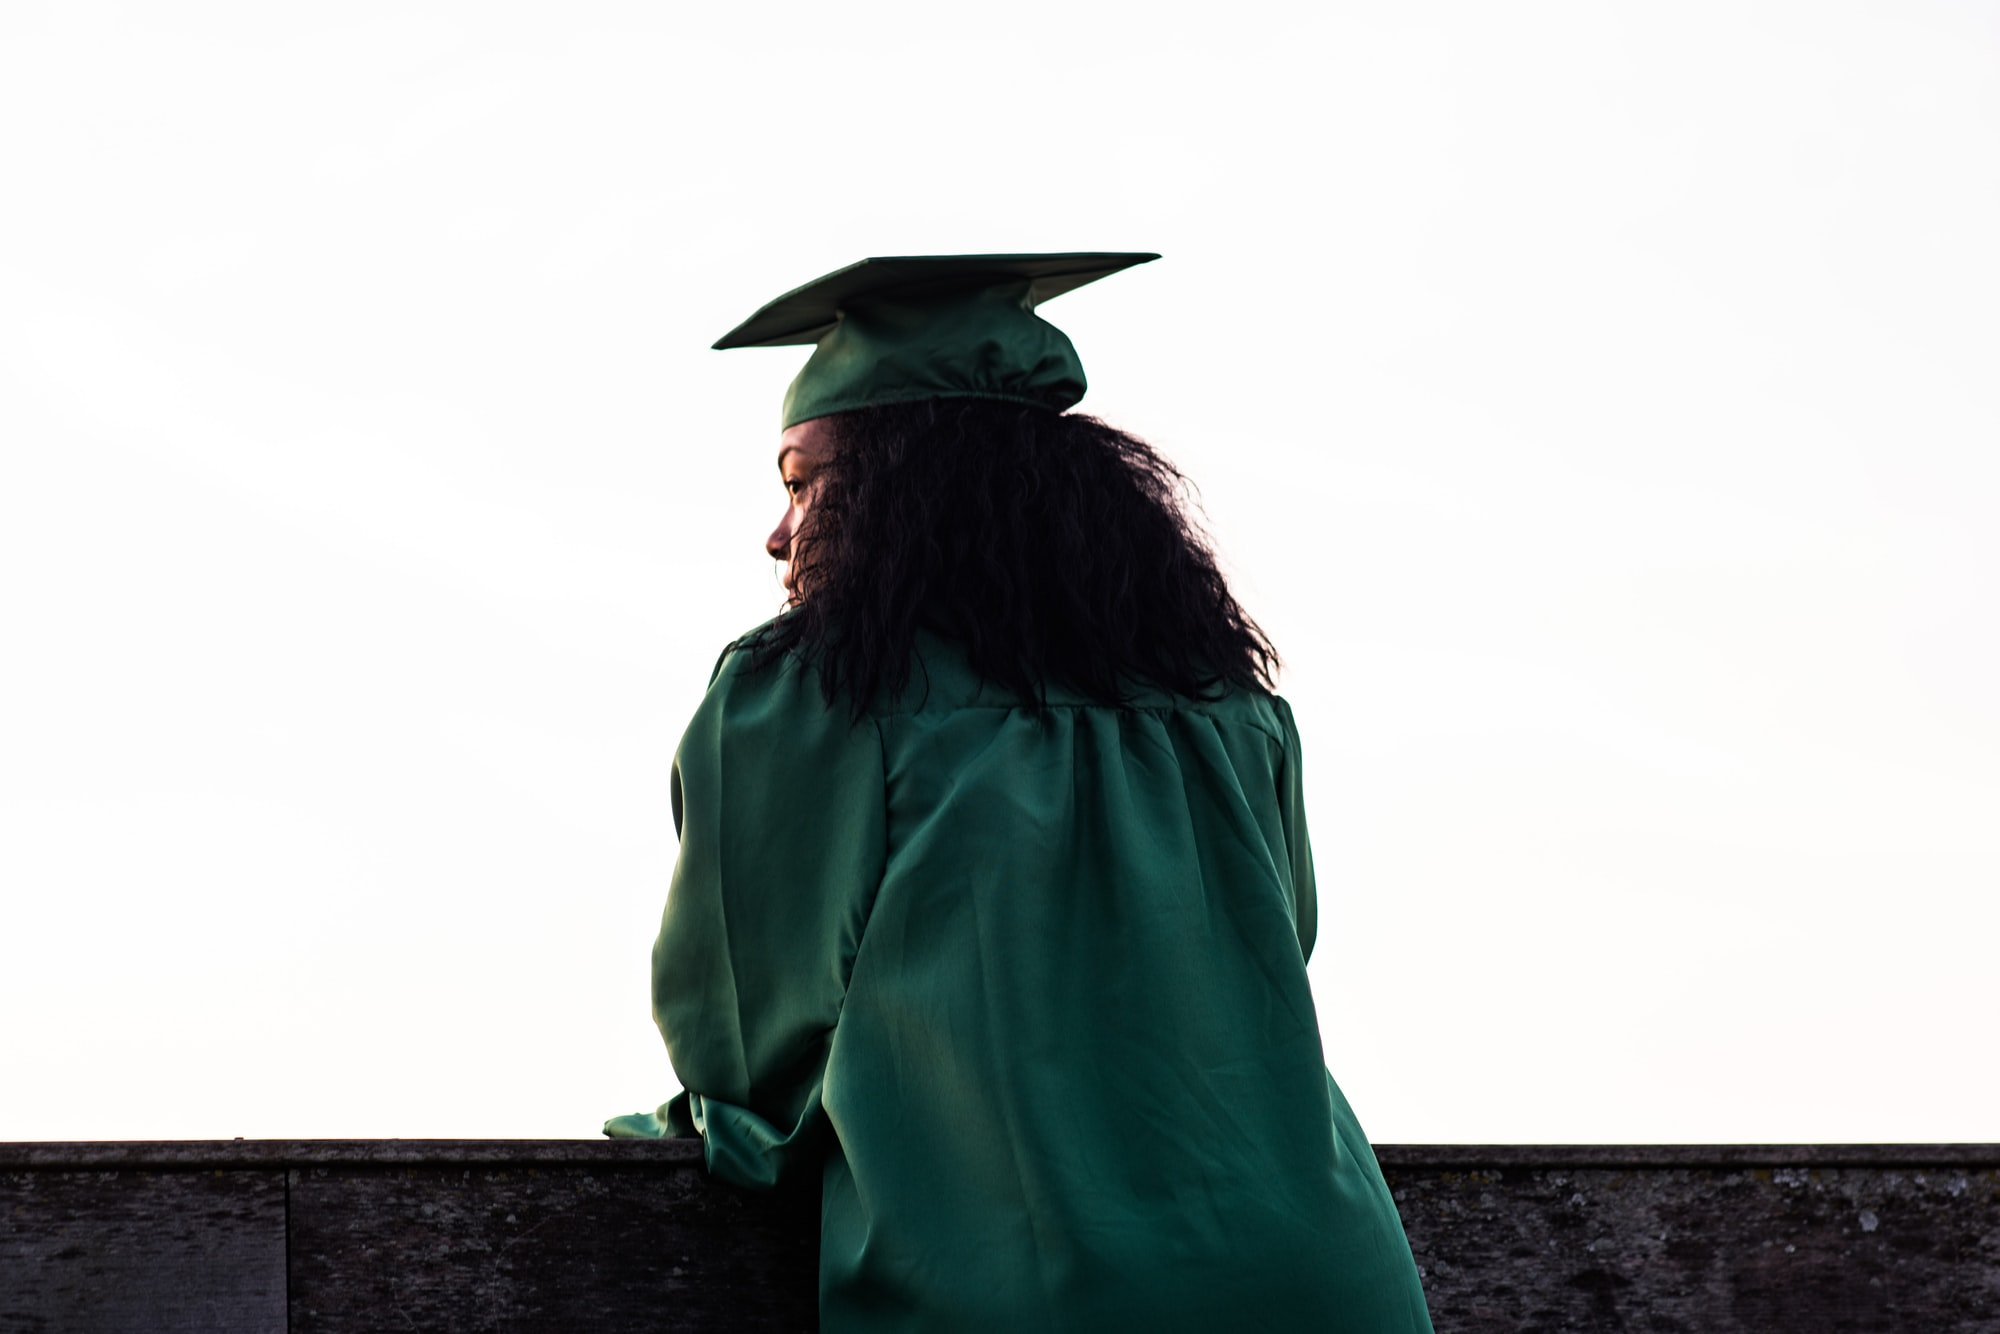 A student in her graduation gown looks out over a wall.